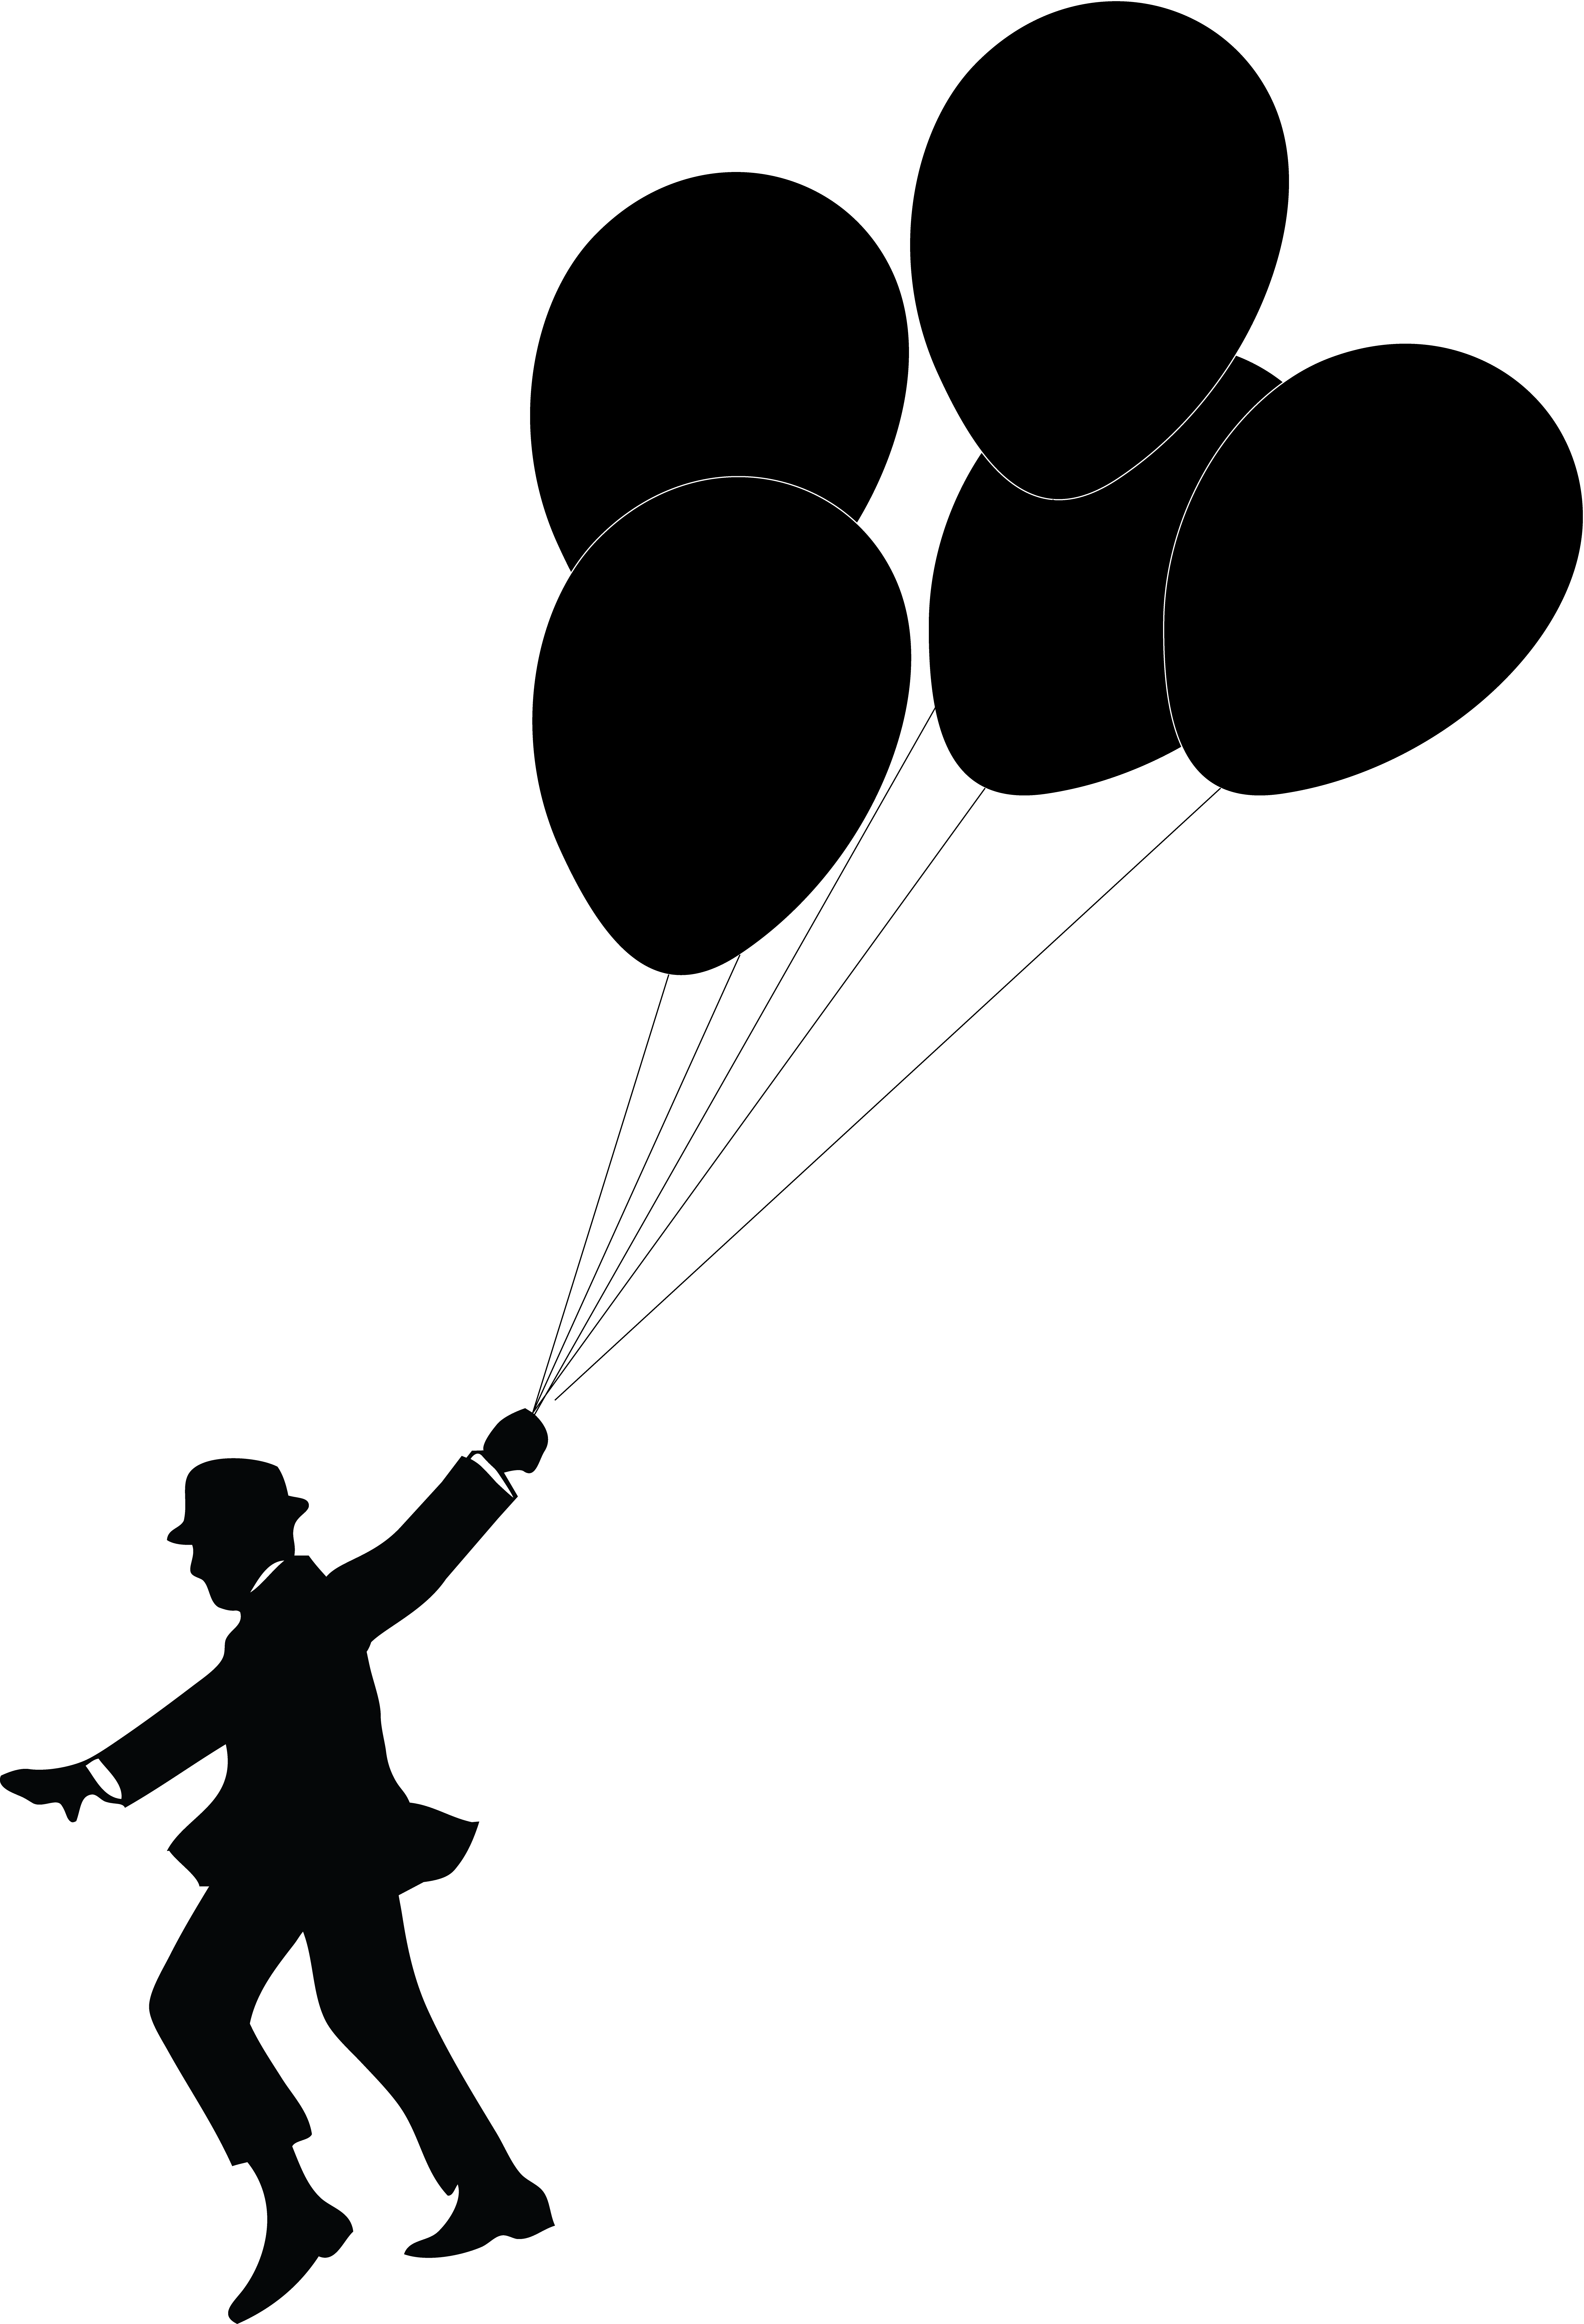 5498x8067 Silhouette Balloon Clipart, Explore Pictures